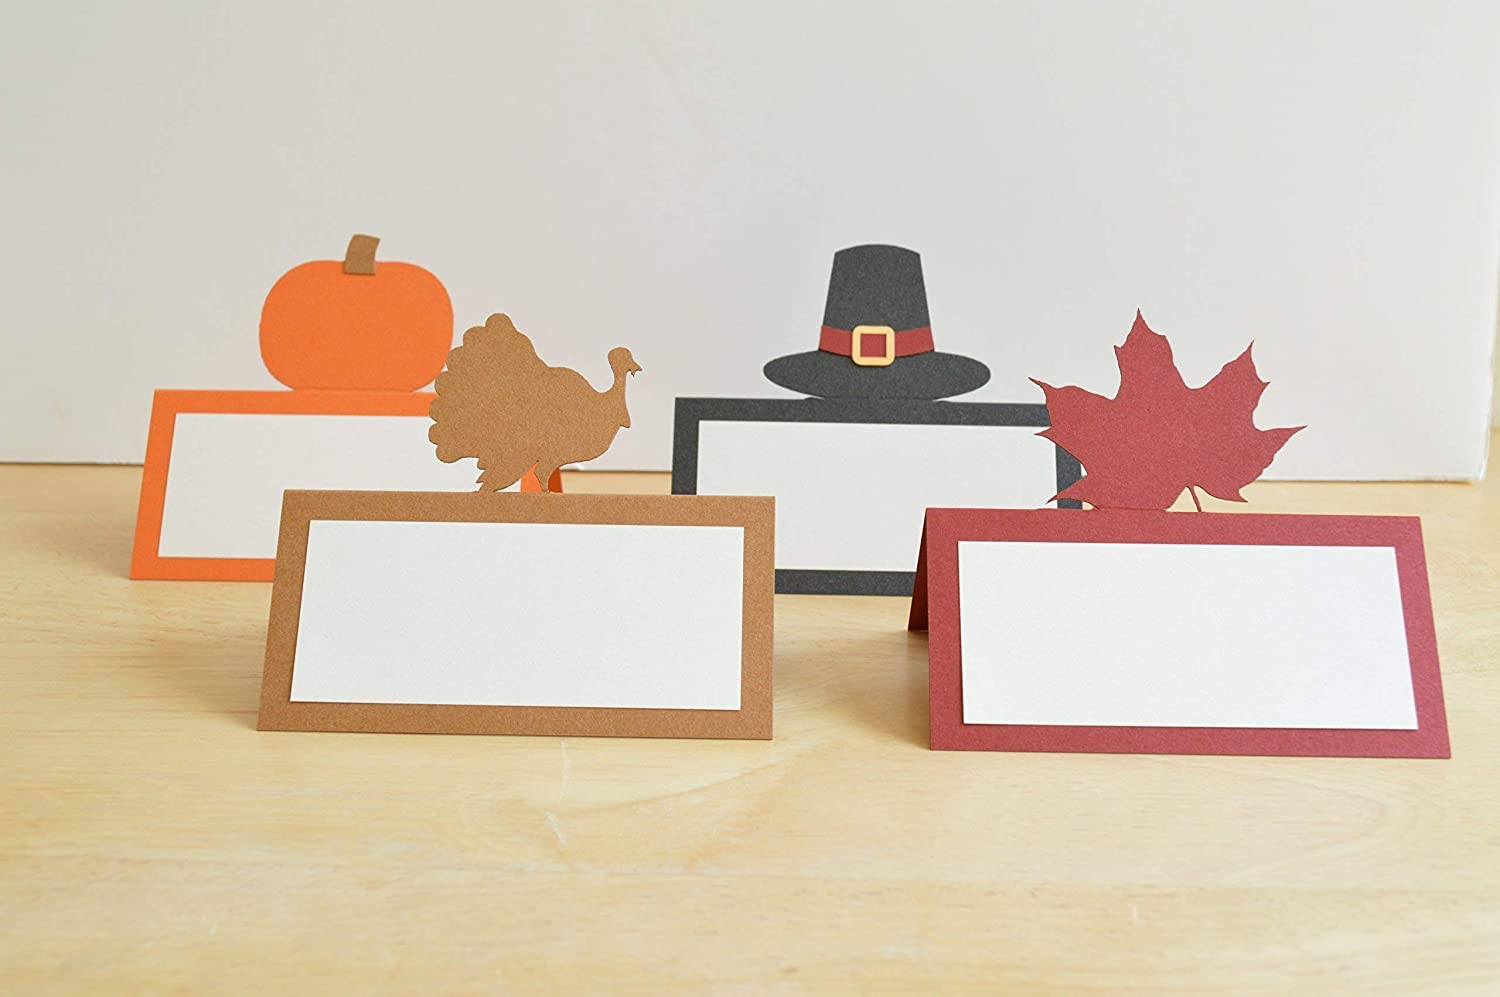 B016FM75DQ Thanksgiving Place Cards - Set of 12 71XNJEsvRdL